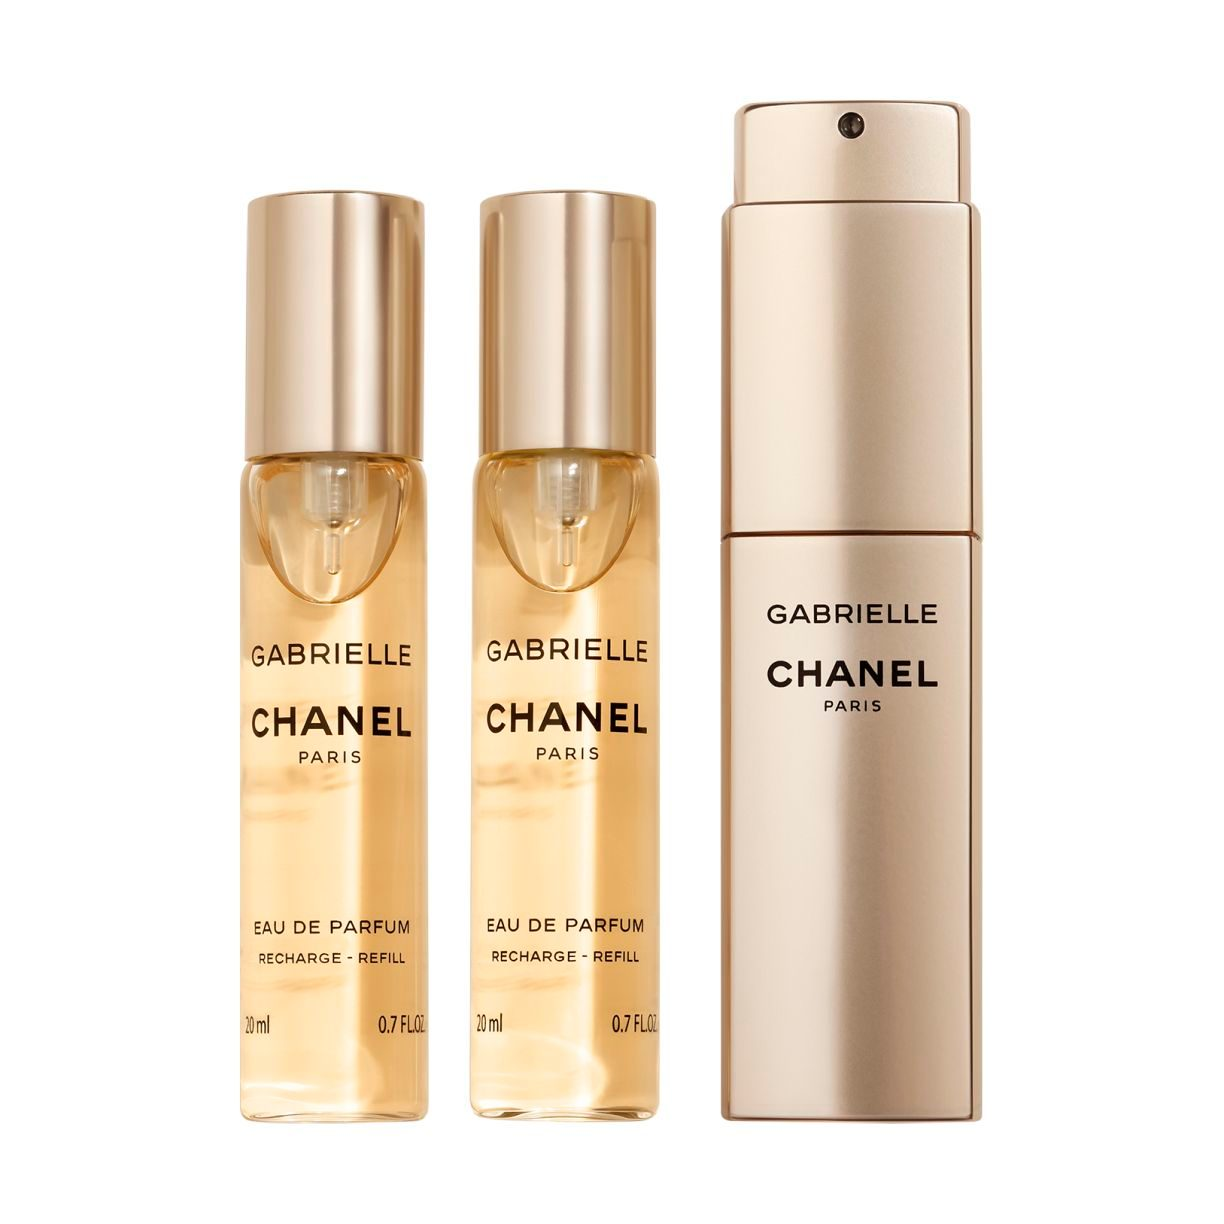 GABRIELLE CHANEL ماء عطر GABRIELLE CHANEL برأس دوار TWIST AND SPRAY 3x20ml